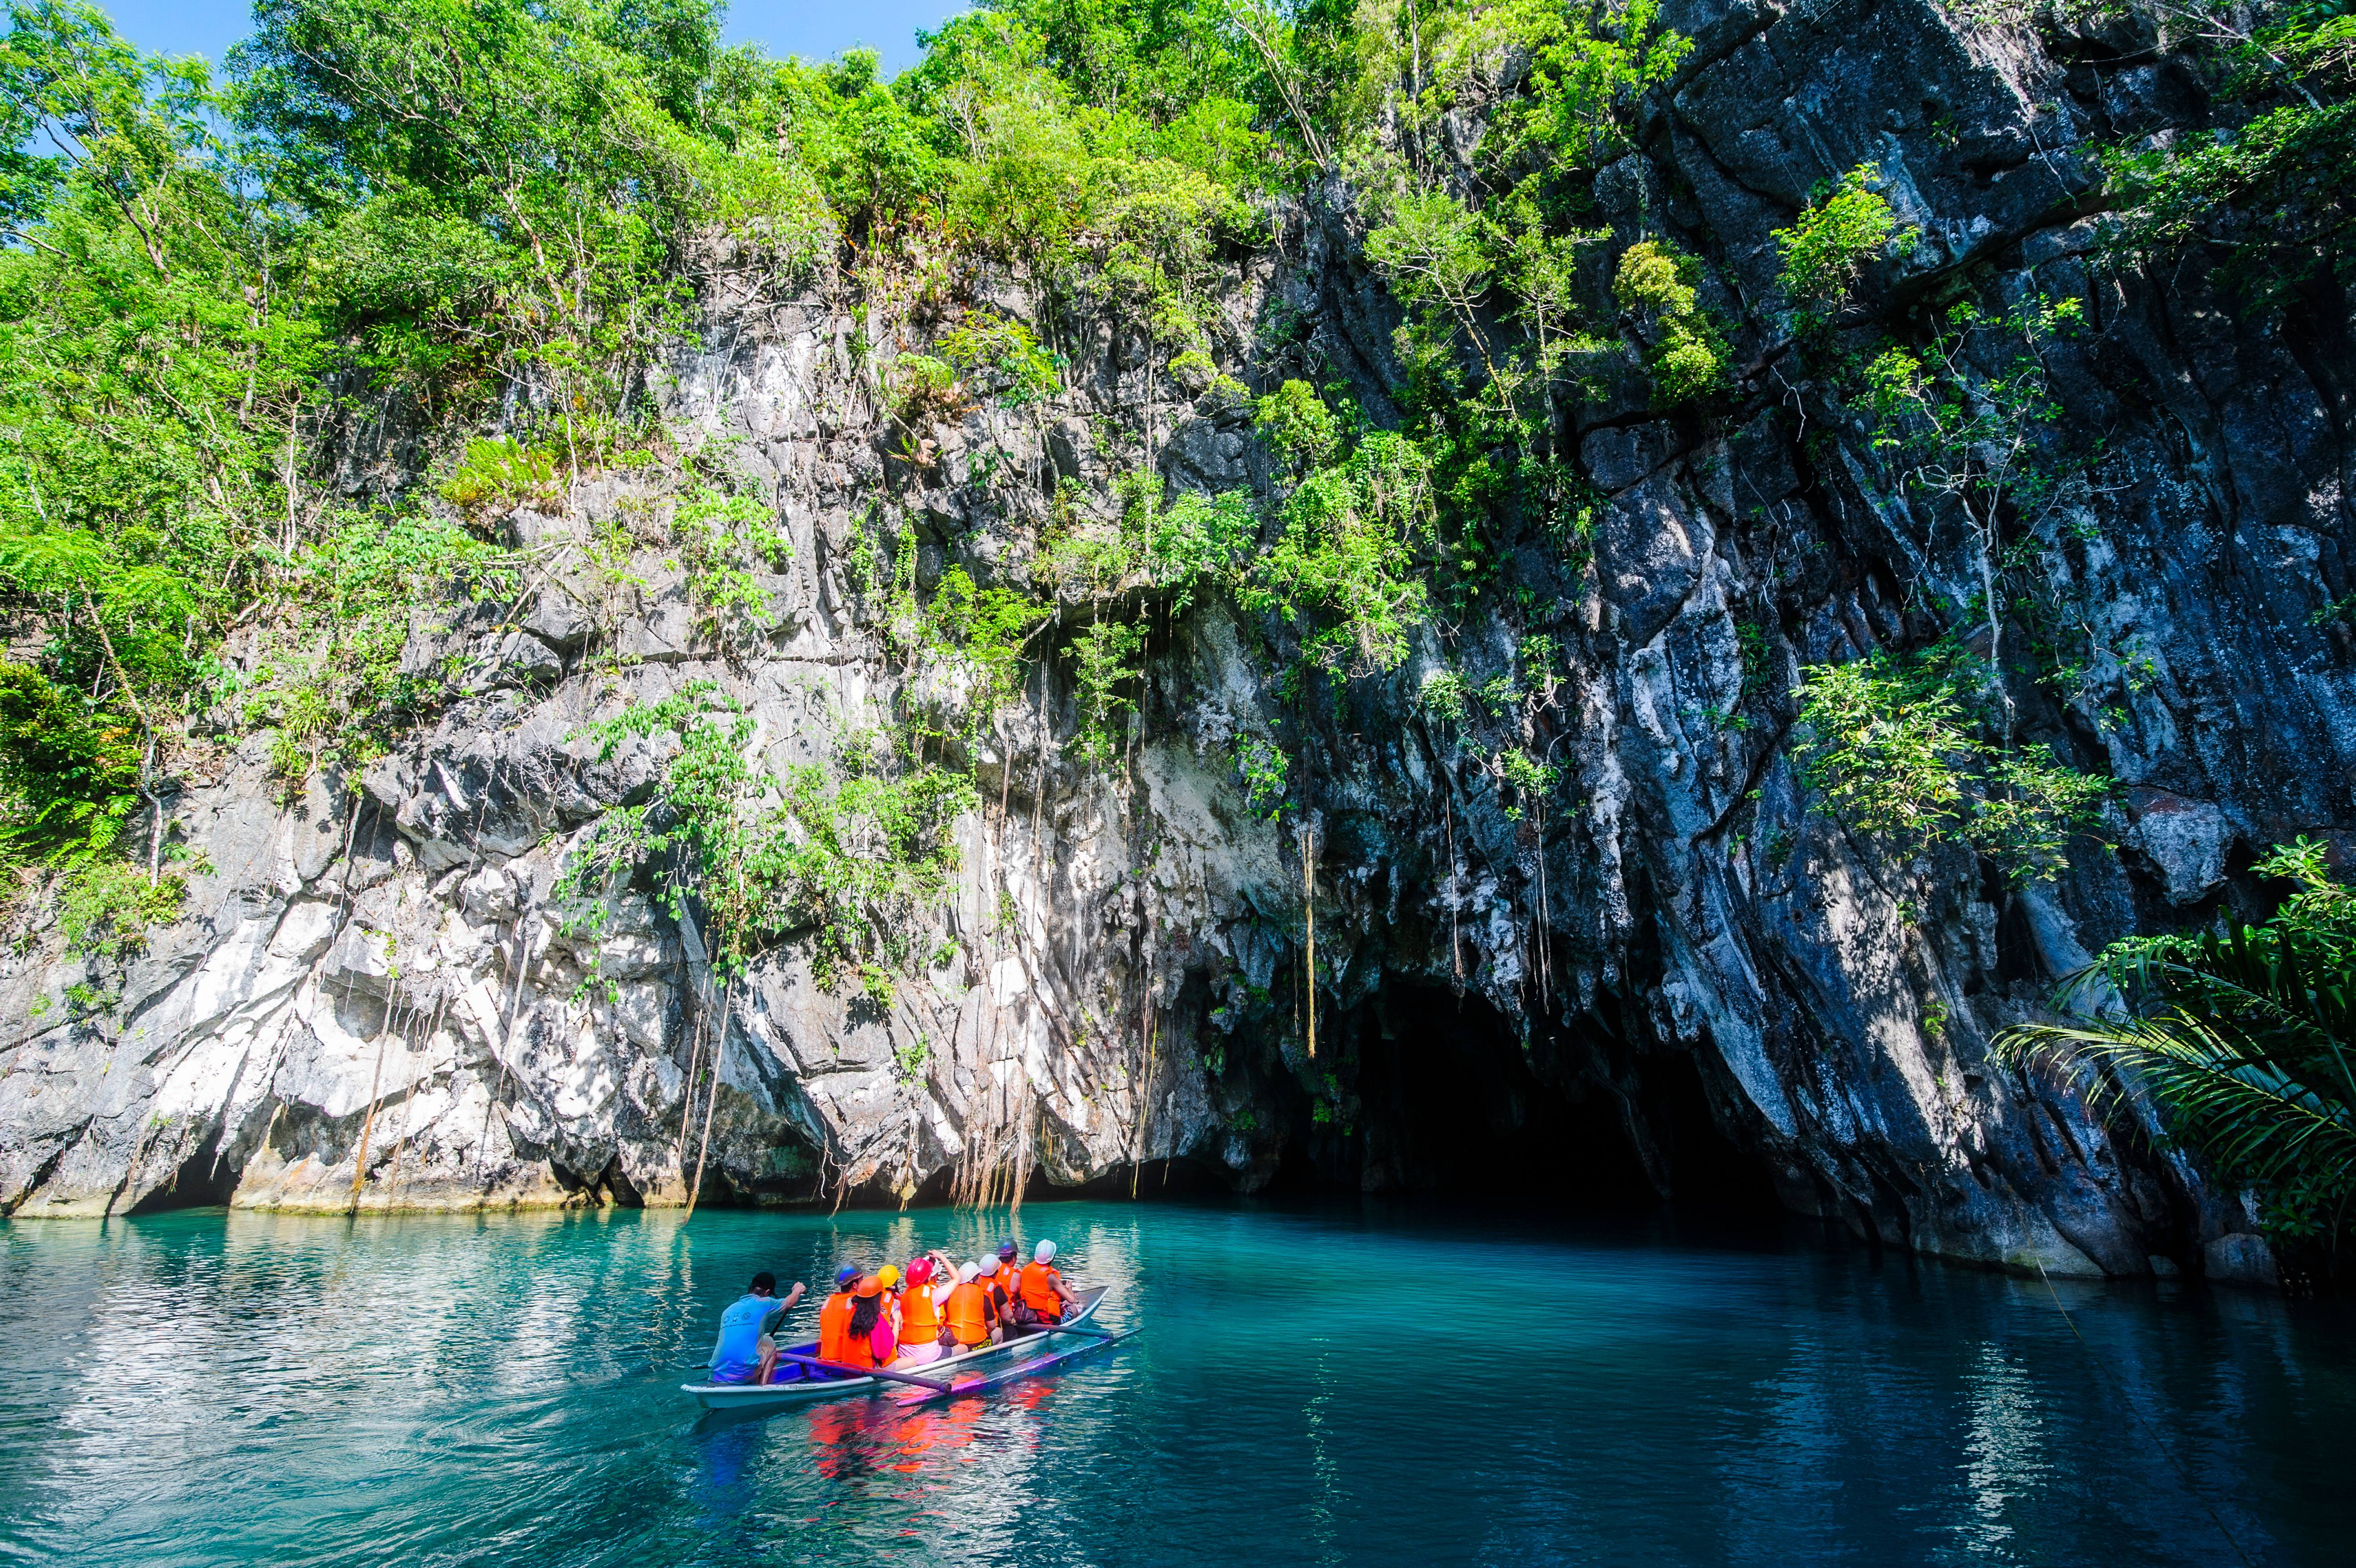 Entrance to the Underground River in Puerto Princesa Palawan